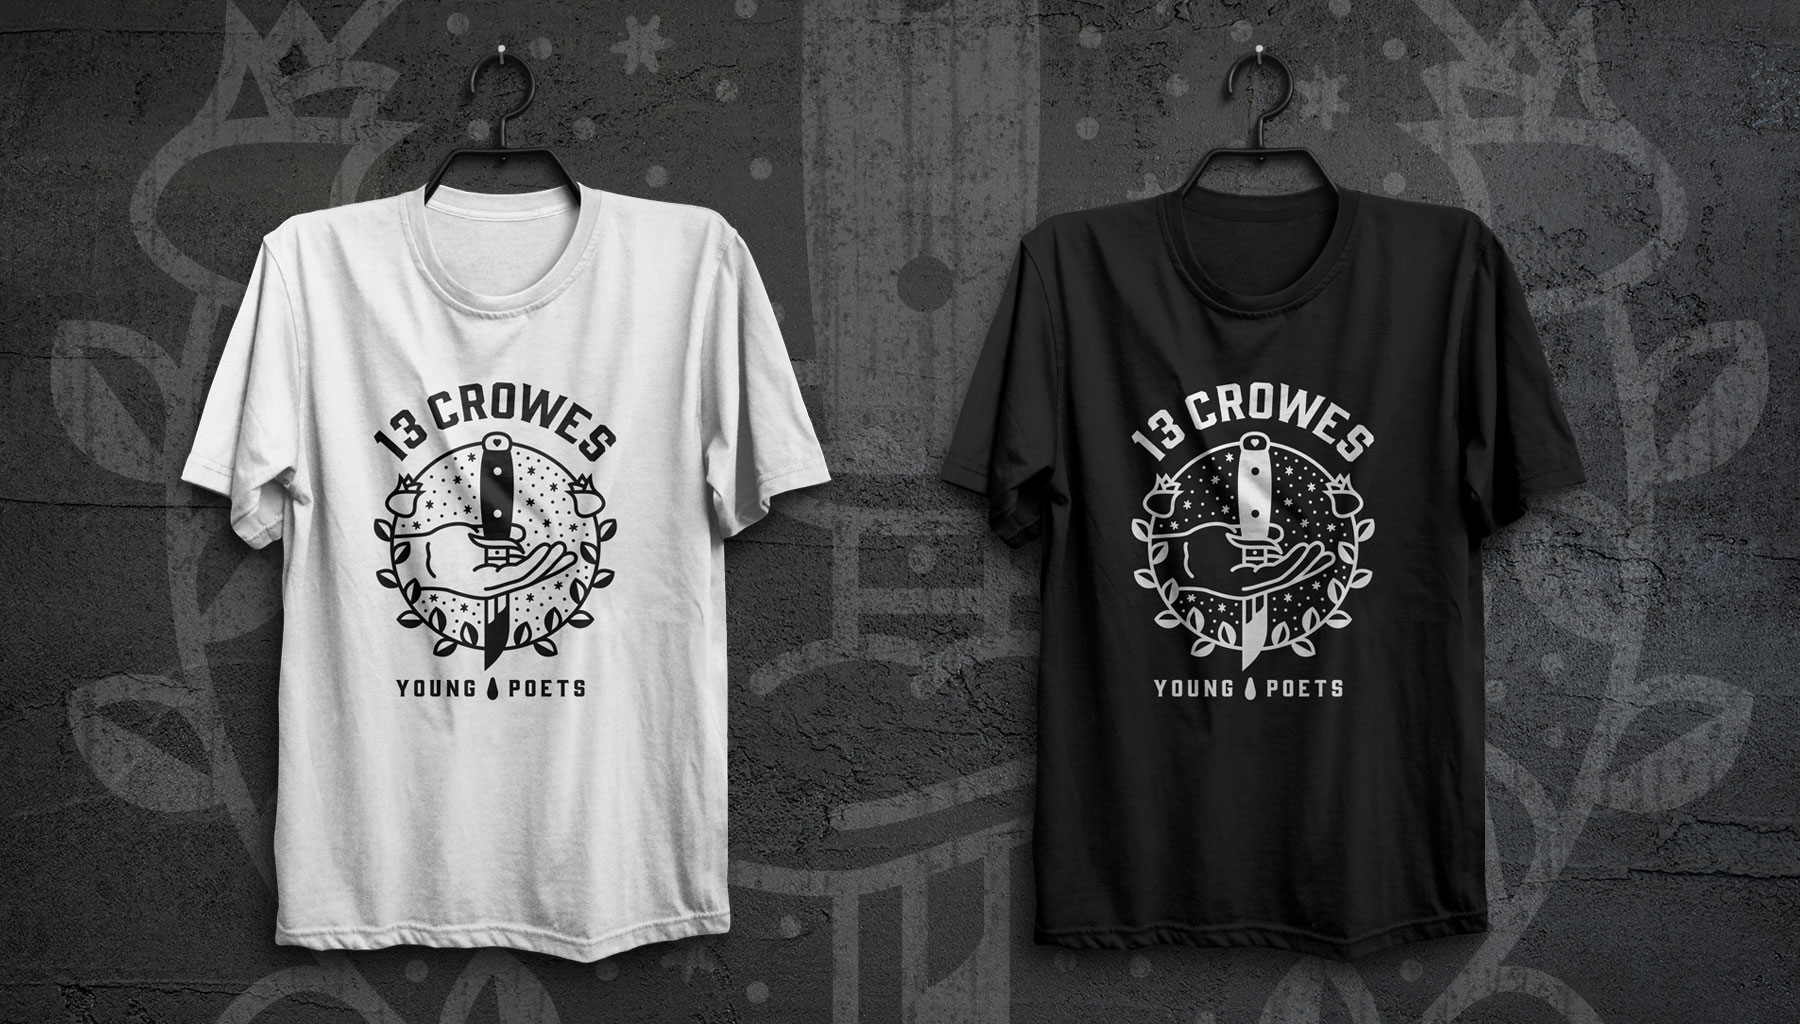 13 Crowes Young Poets Shirt